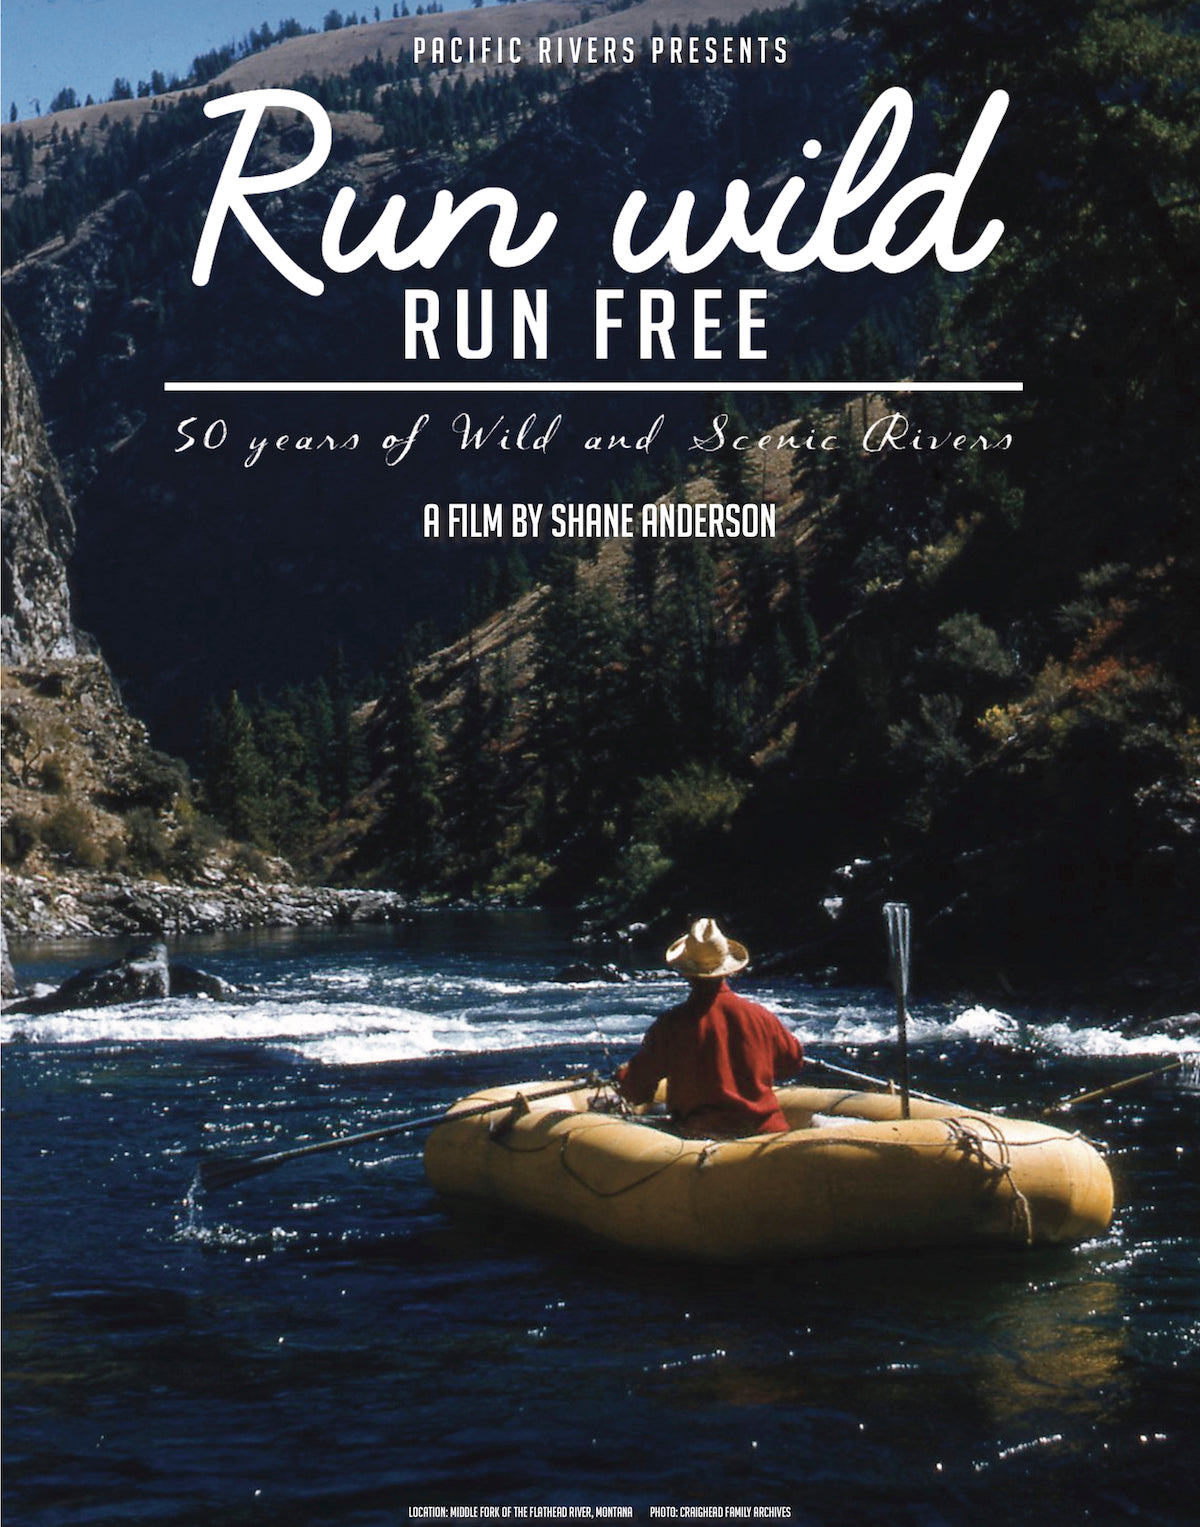 Run Wild Run Free: 50 Years of Wild and Scenic Rivers